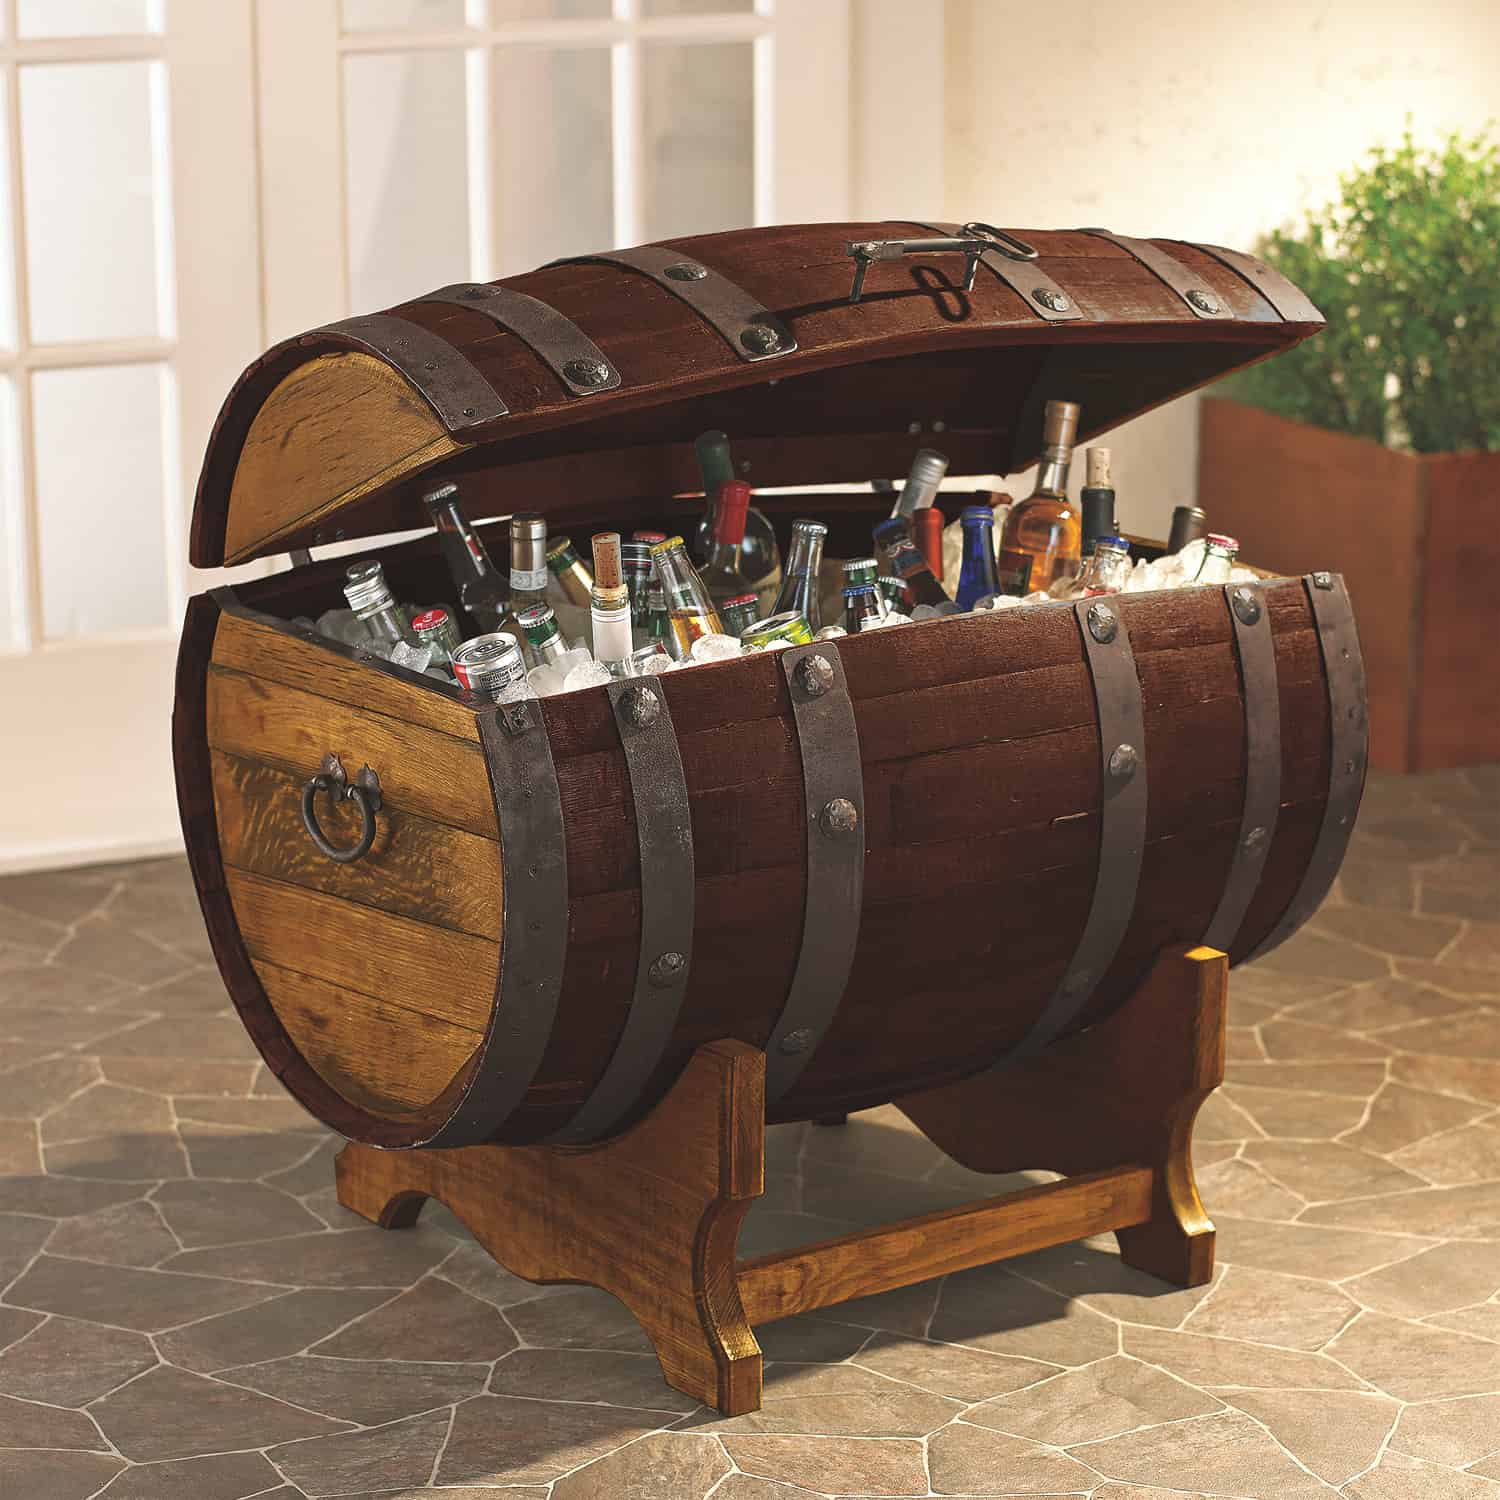 Reclaimed Tequila Barrel Ice Chest and Stand (Large)